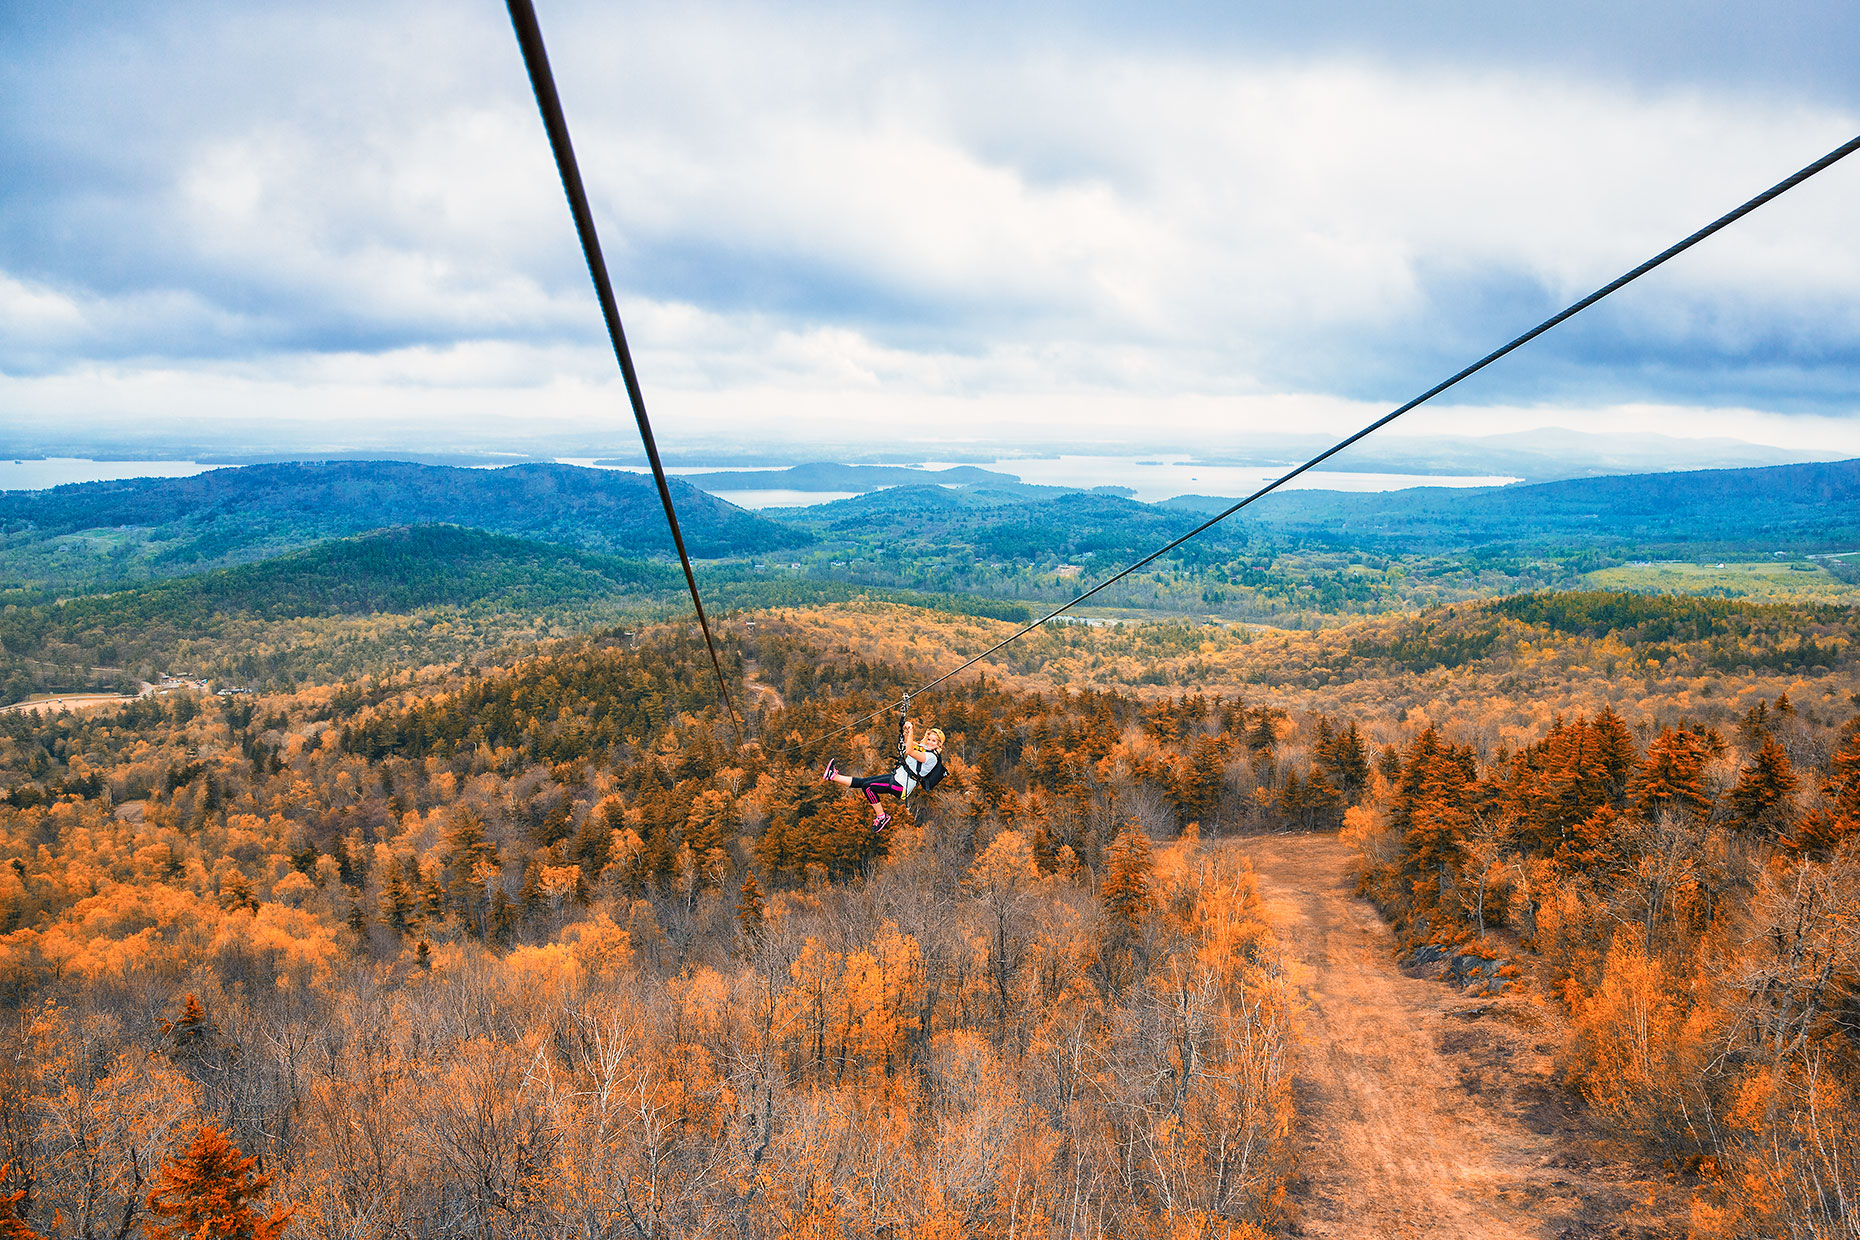 Zip Lining at Gunstock Mountain Resort, New Hampshire in travel photos by Kevin Brusie